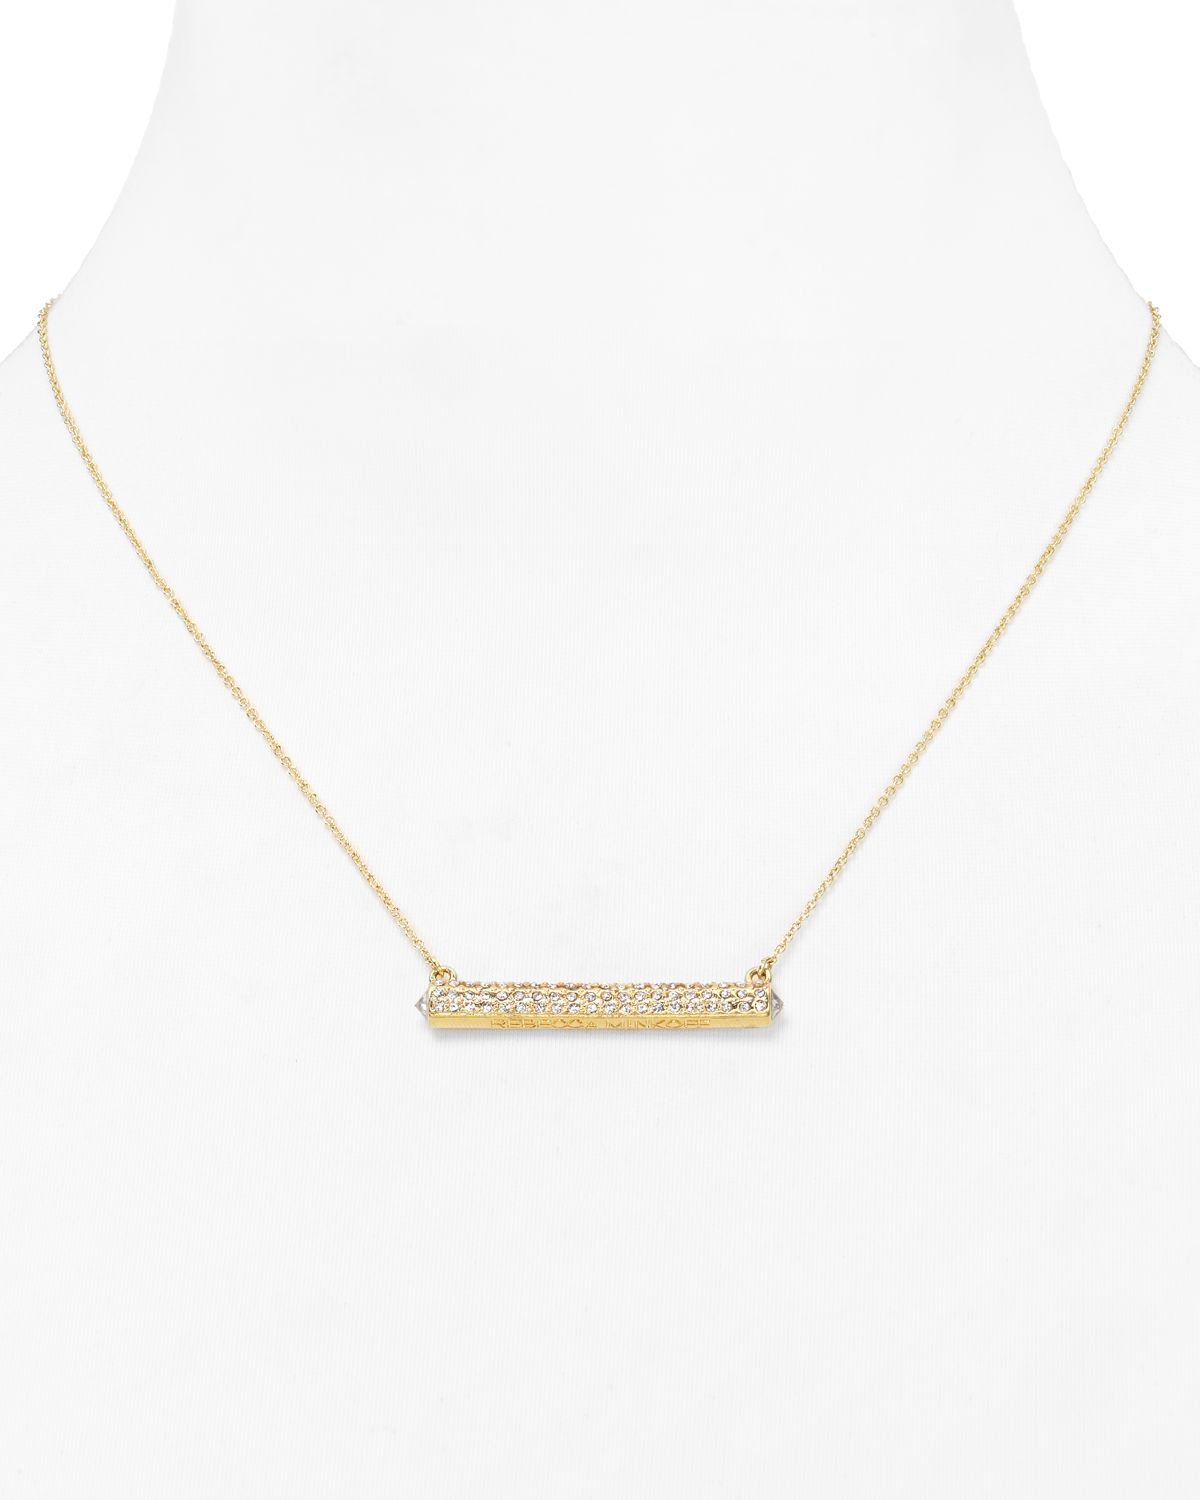 Rebecca Minkoff Beaded Pave Bar Necklace in Metallic Gold uRnROpv